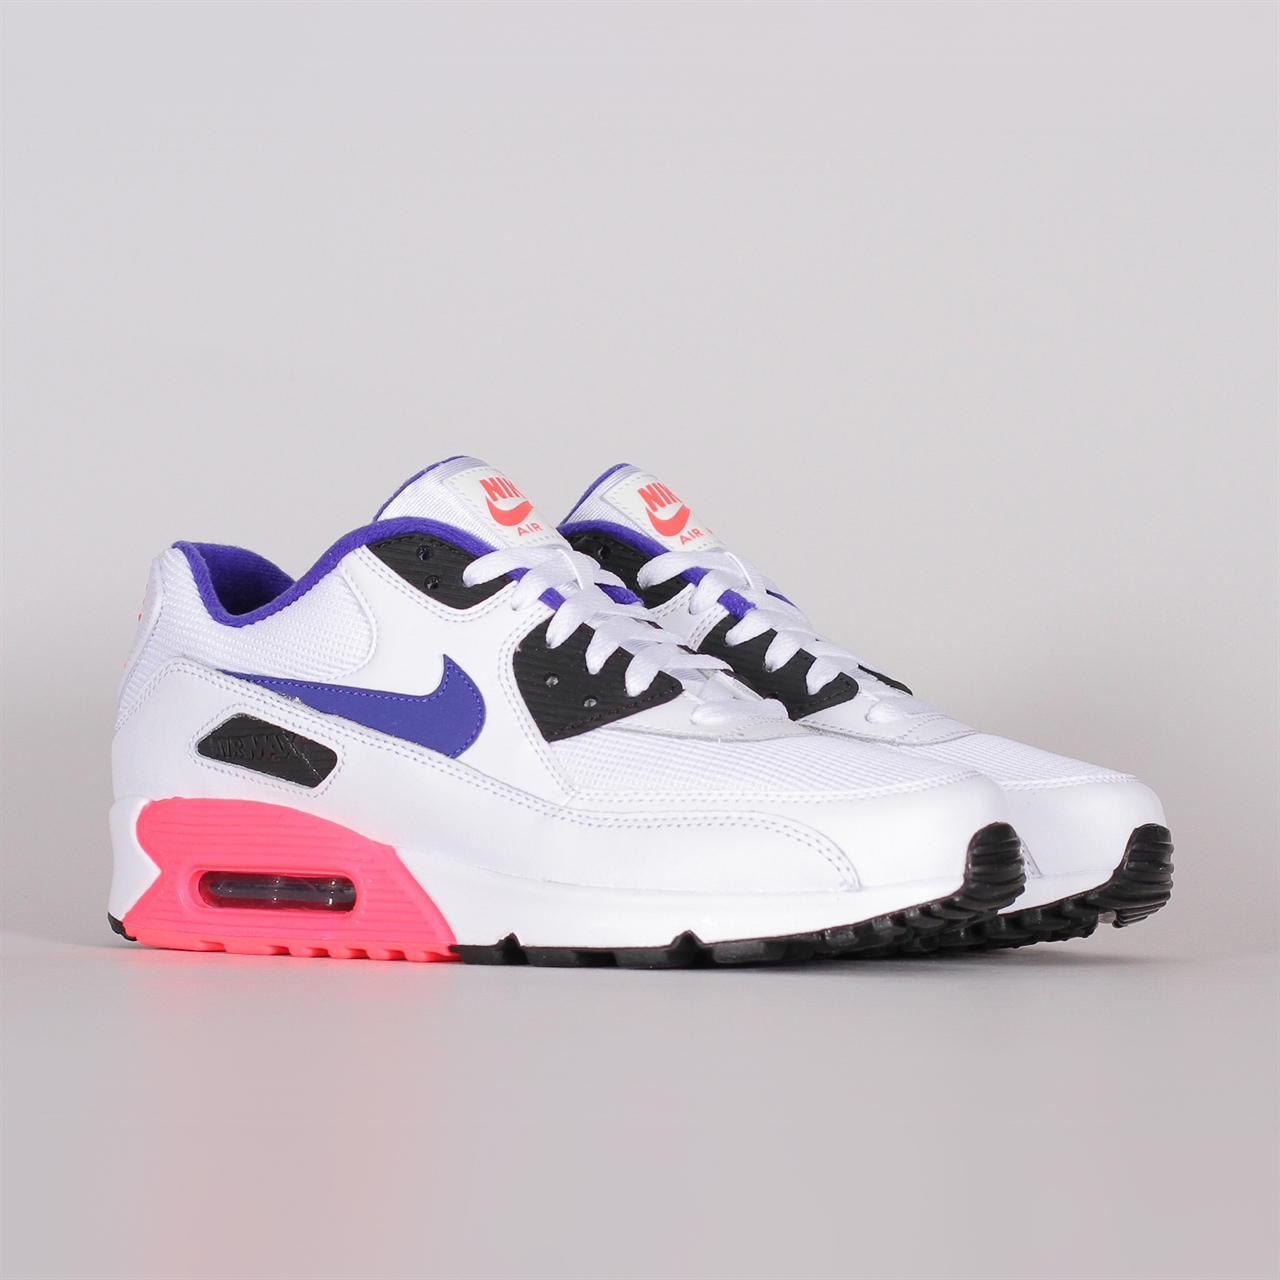 09272476709 Shelta - Nike Sportswear Air Max 90 Essential (537384-136)